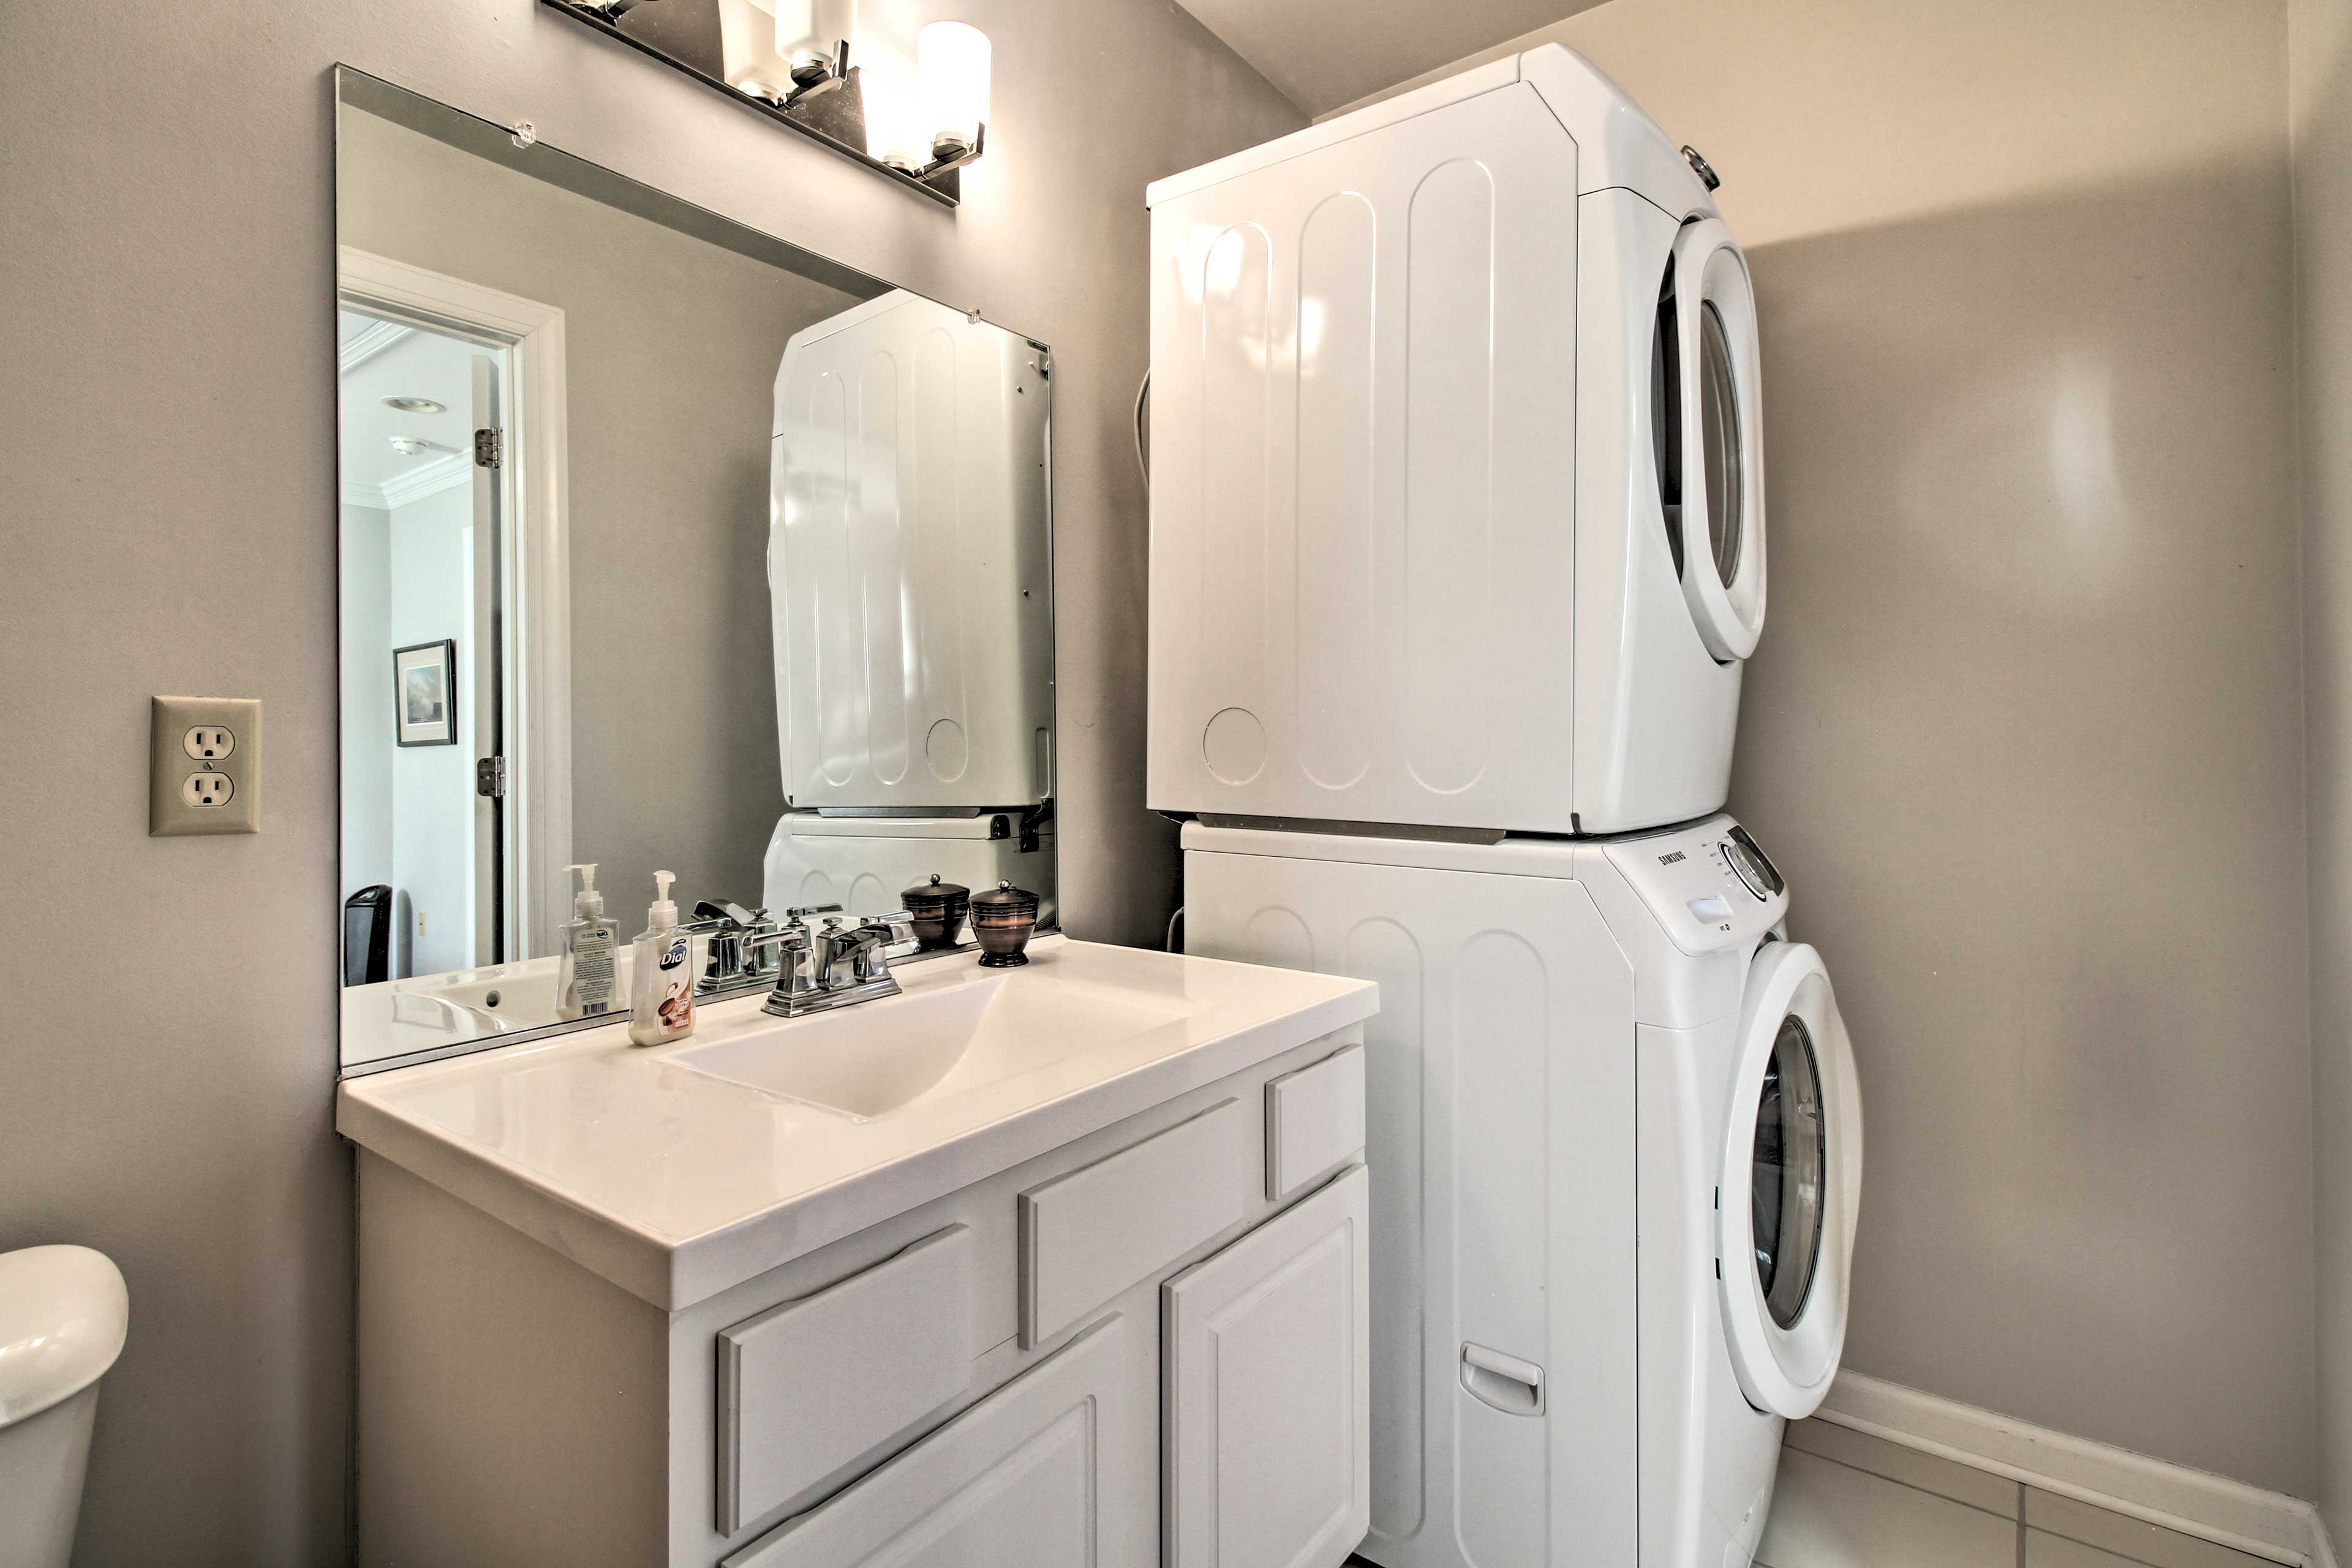 Use the in-unit washer and dryer to keep your clothing fresh!